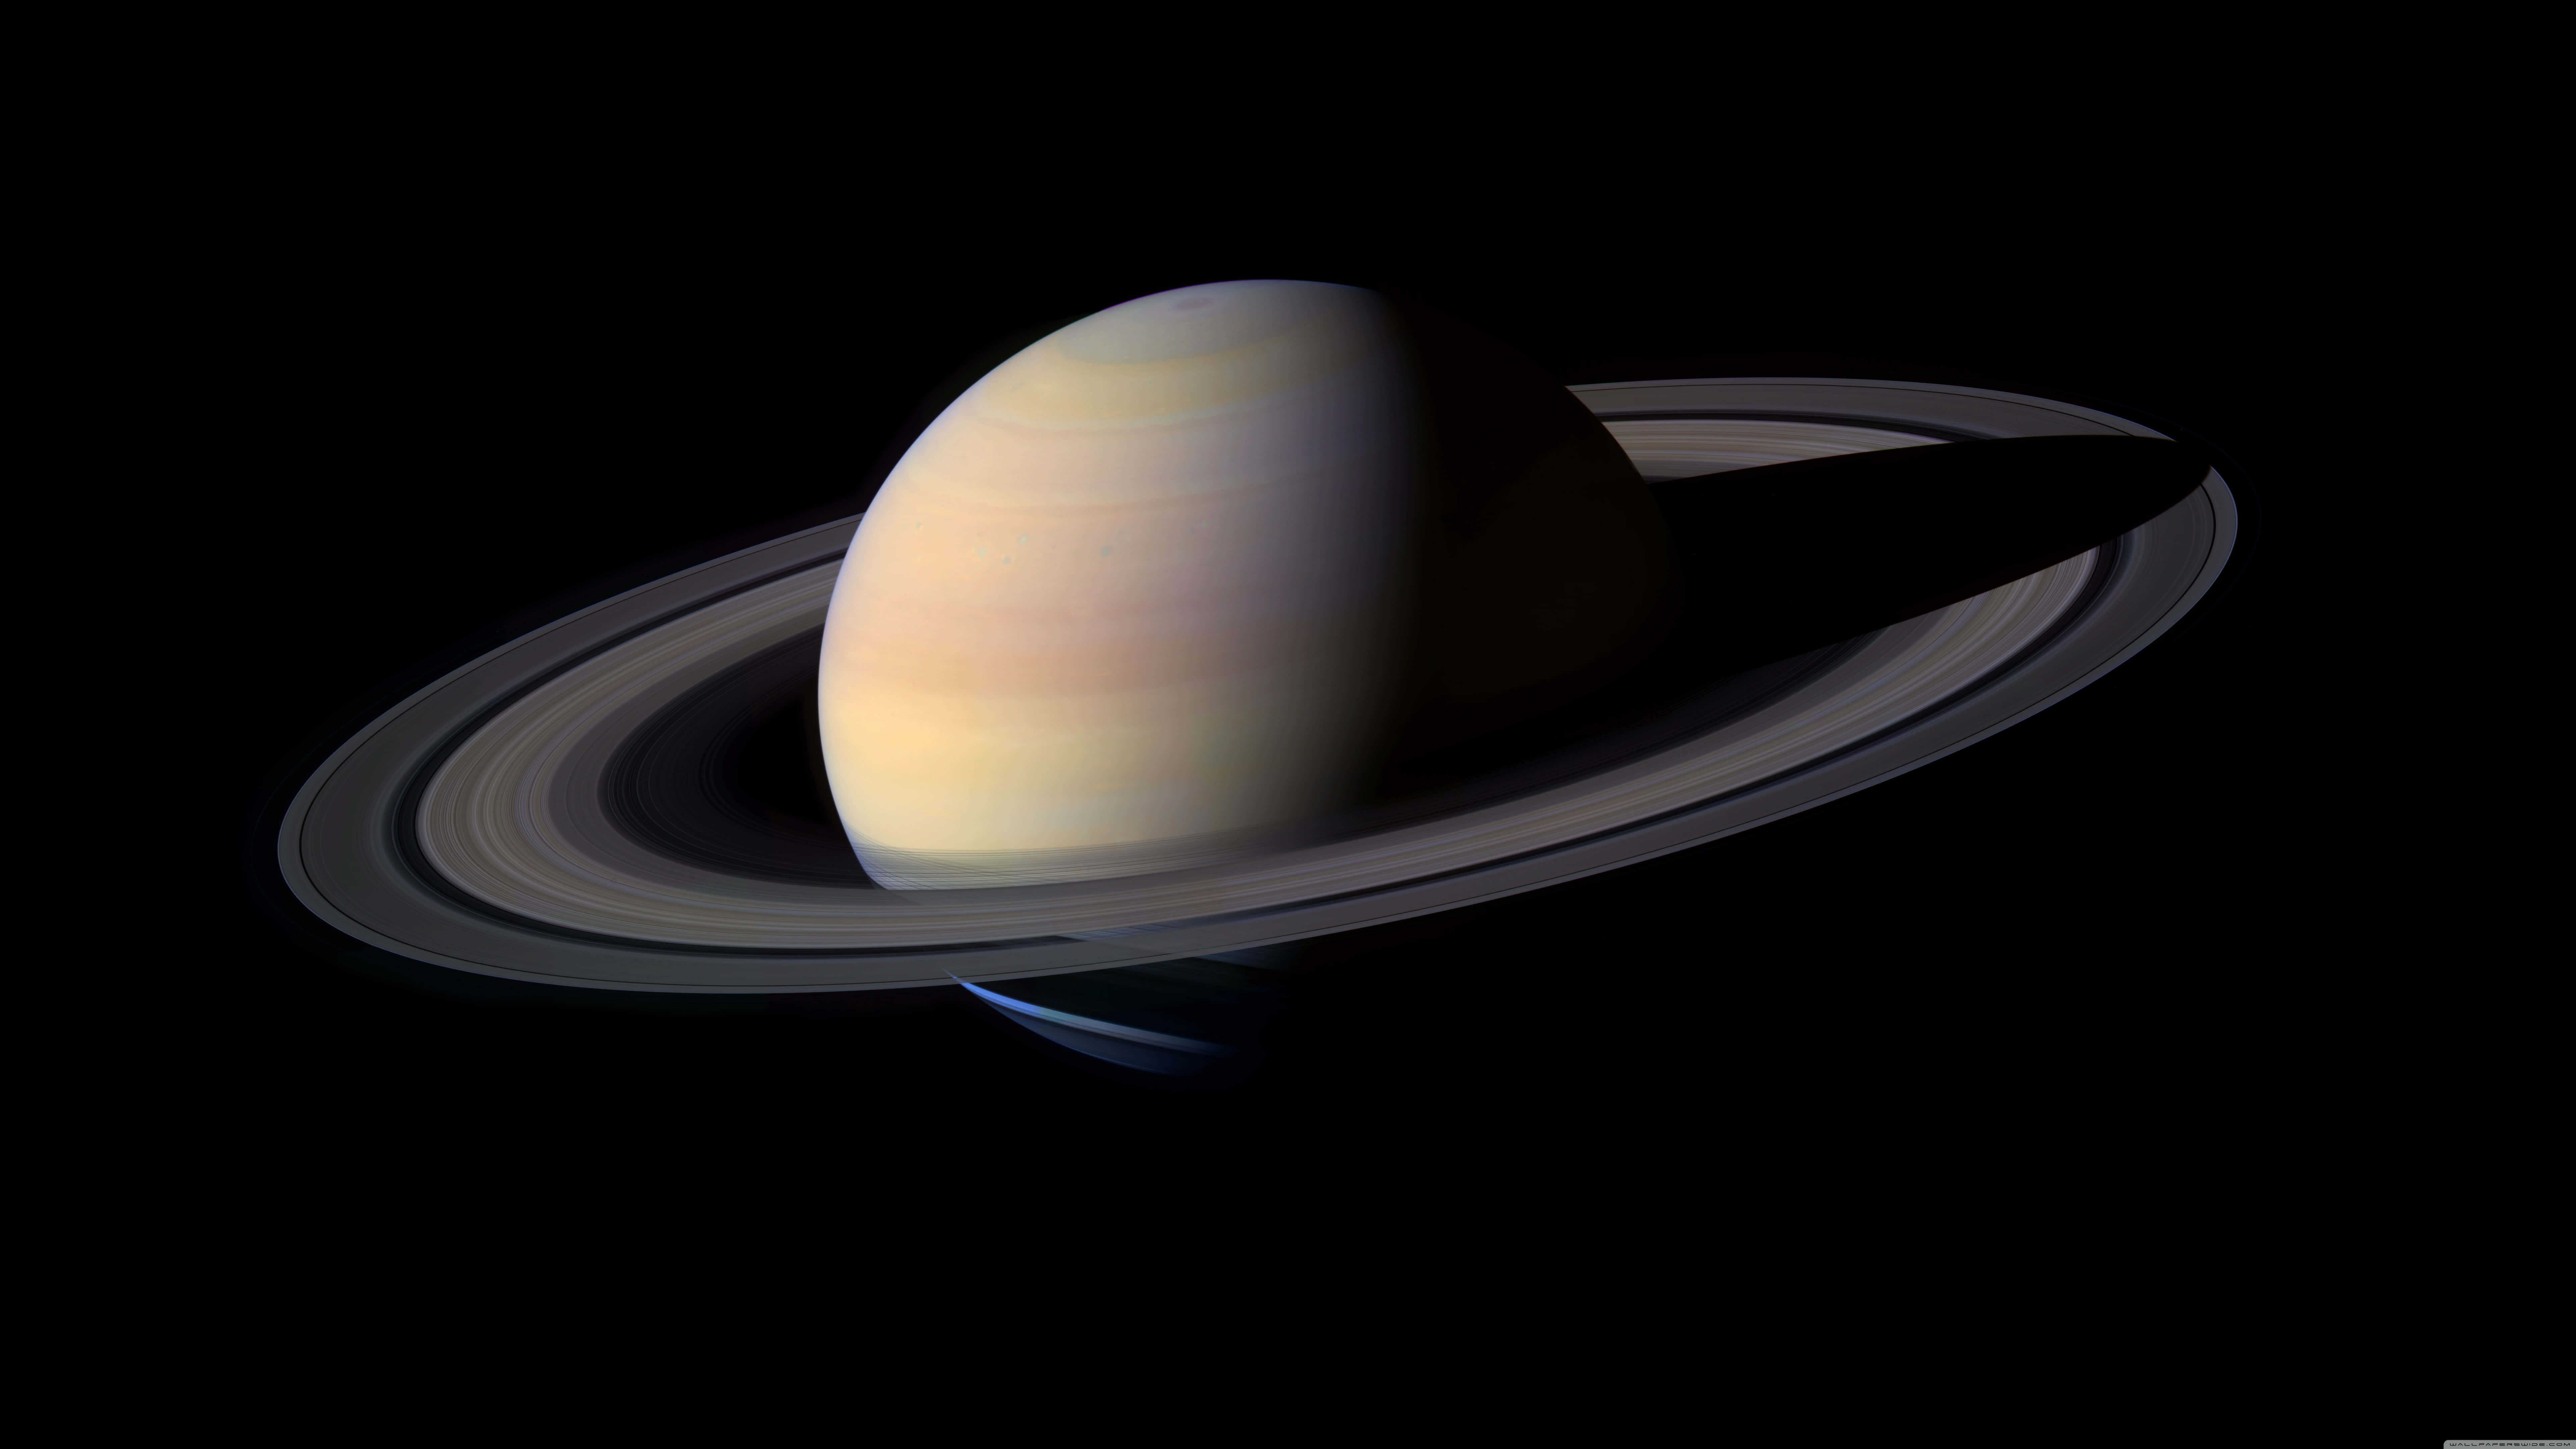 7680x4320 - Saturn Wallpapers 12